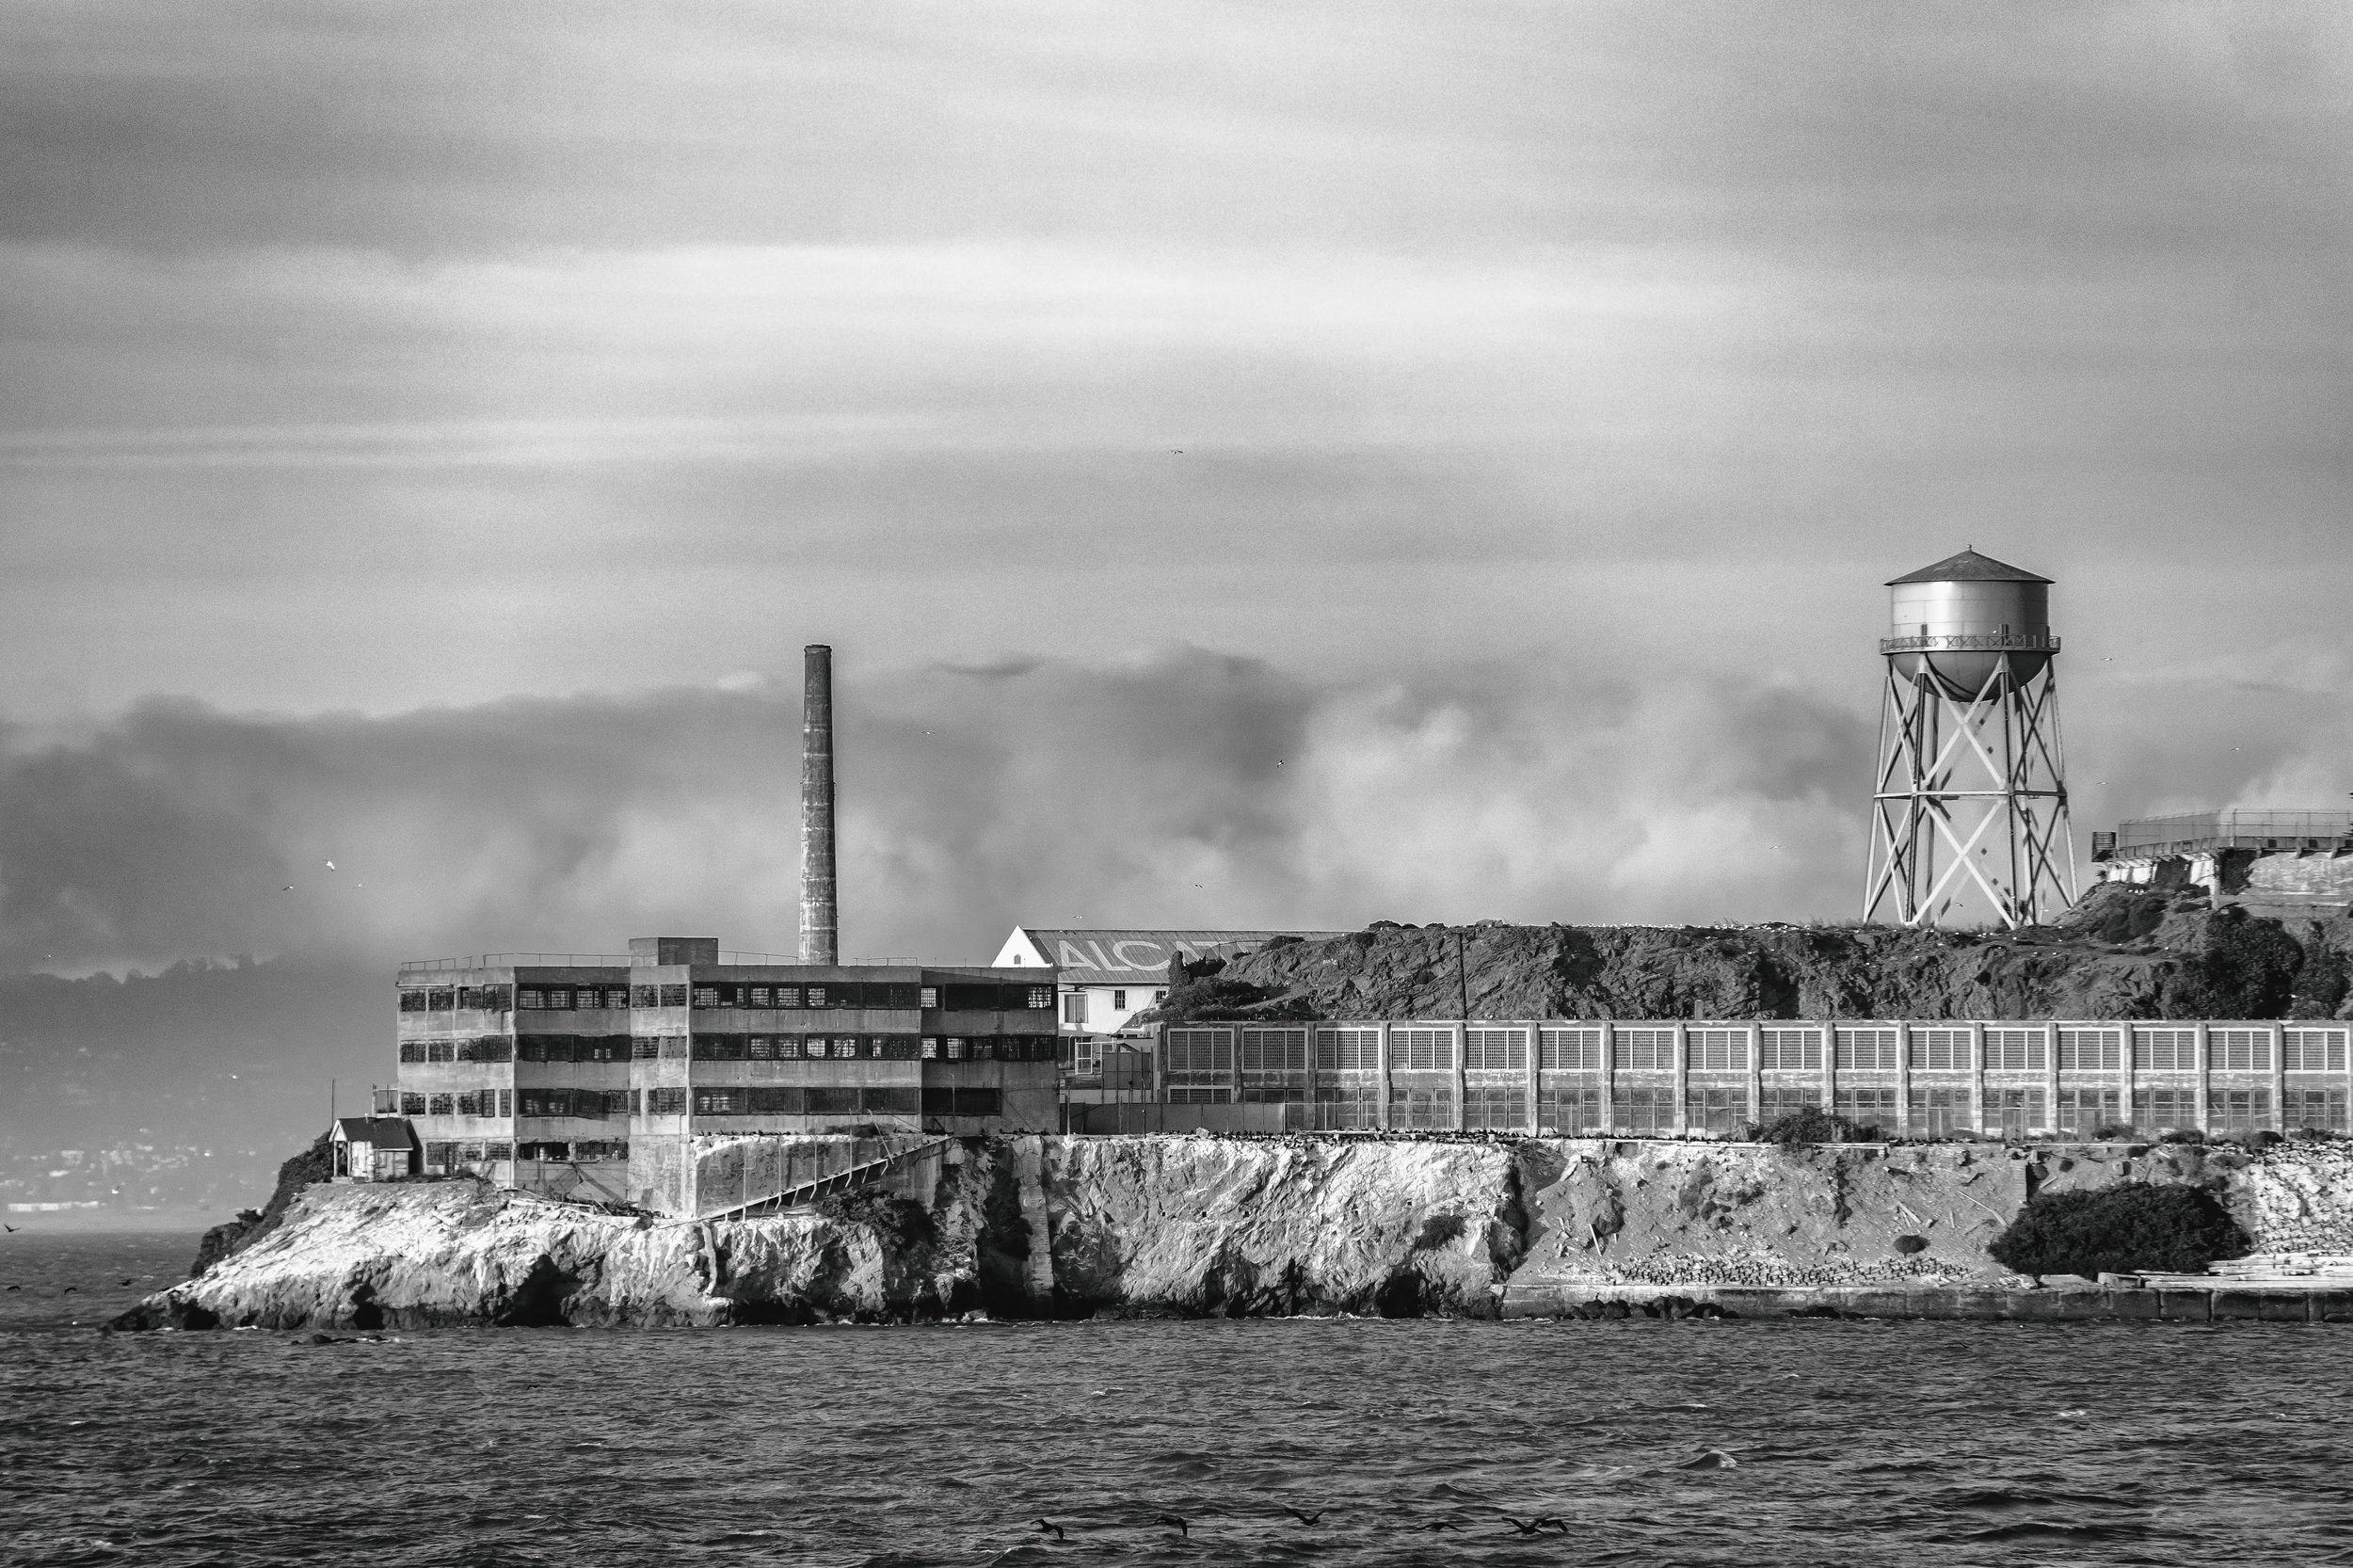 Alcatraz Island. Home to thousands of nesting seabirds that are studied by Farallon Institute scientists to understand how climate and food resources influence their populations.